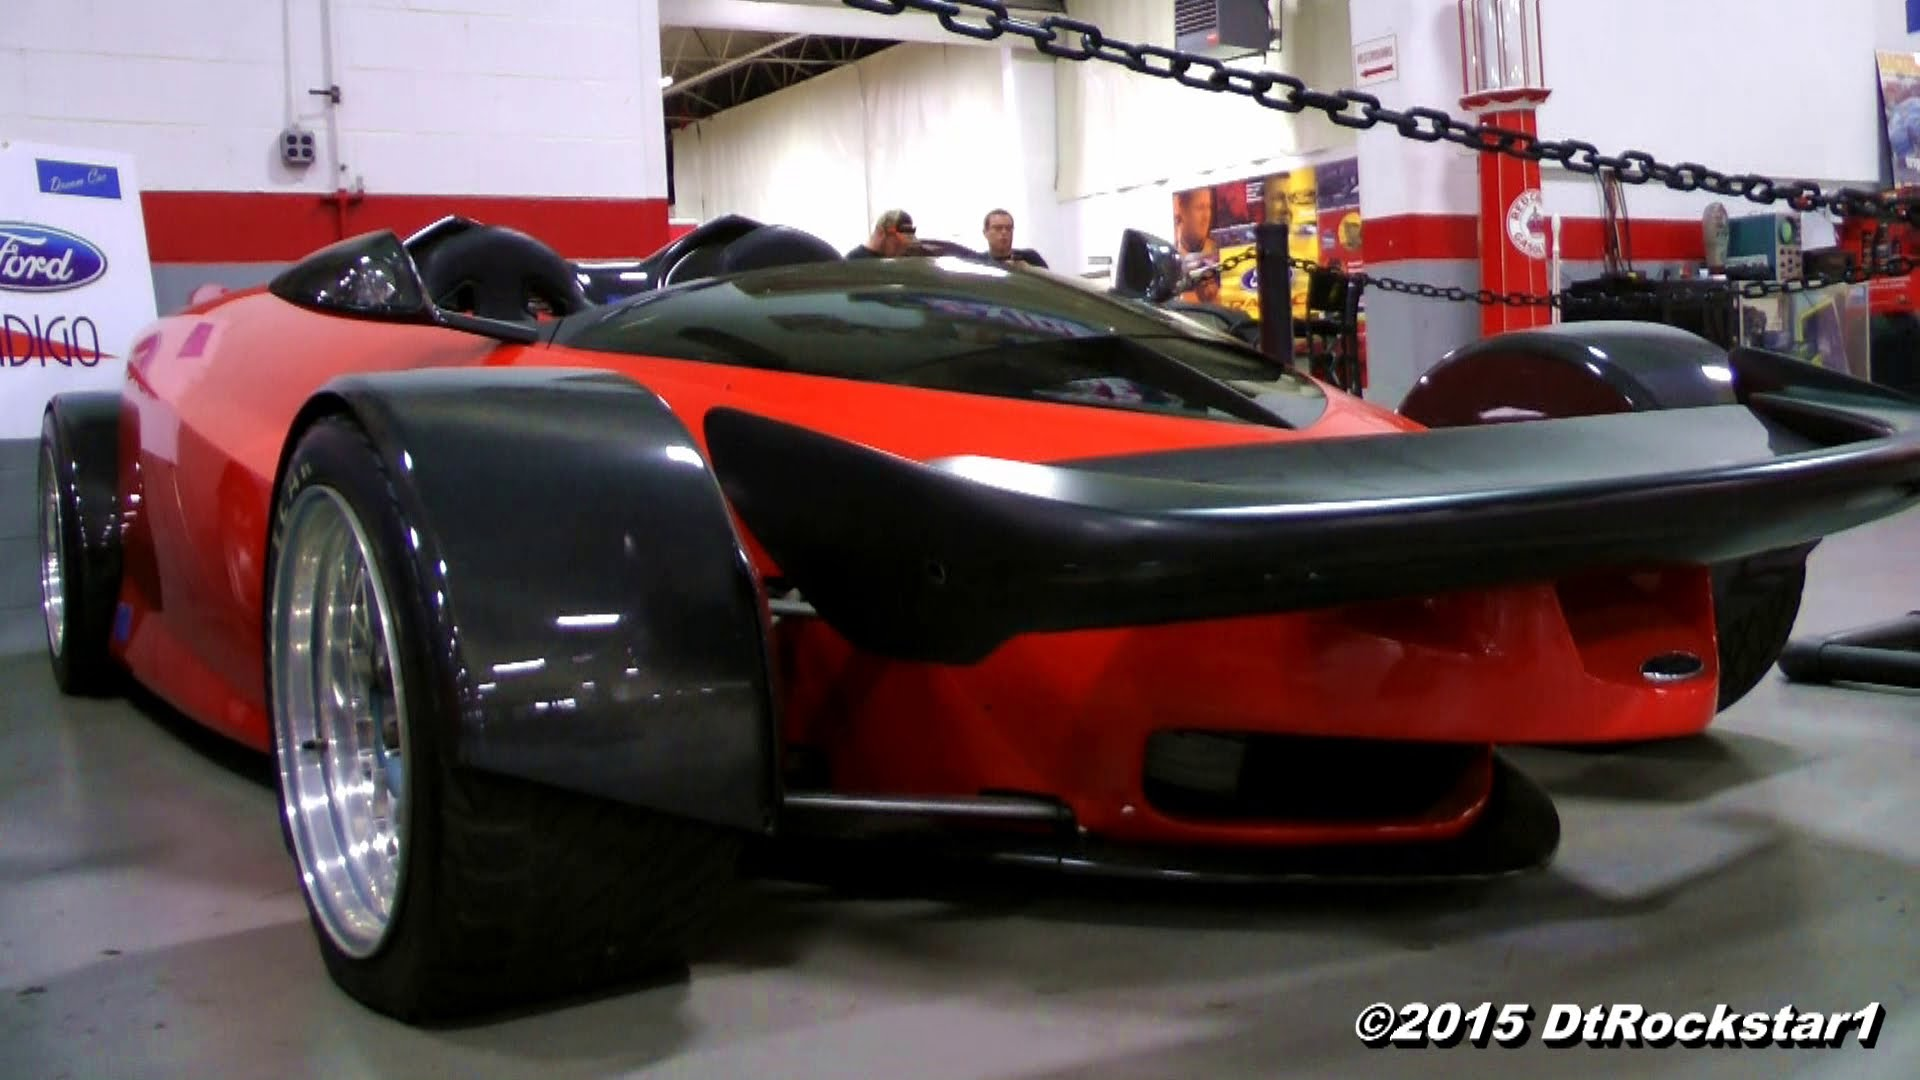 Very Rare Ford Indigo Concept Car Spotted! Insanely Cool!